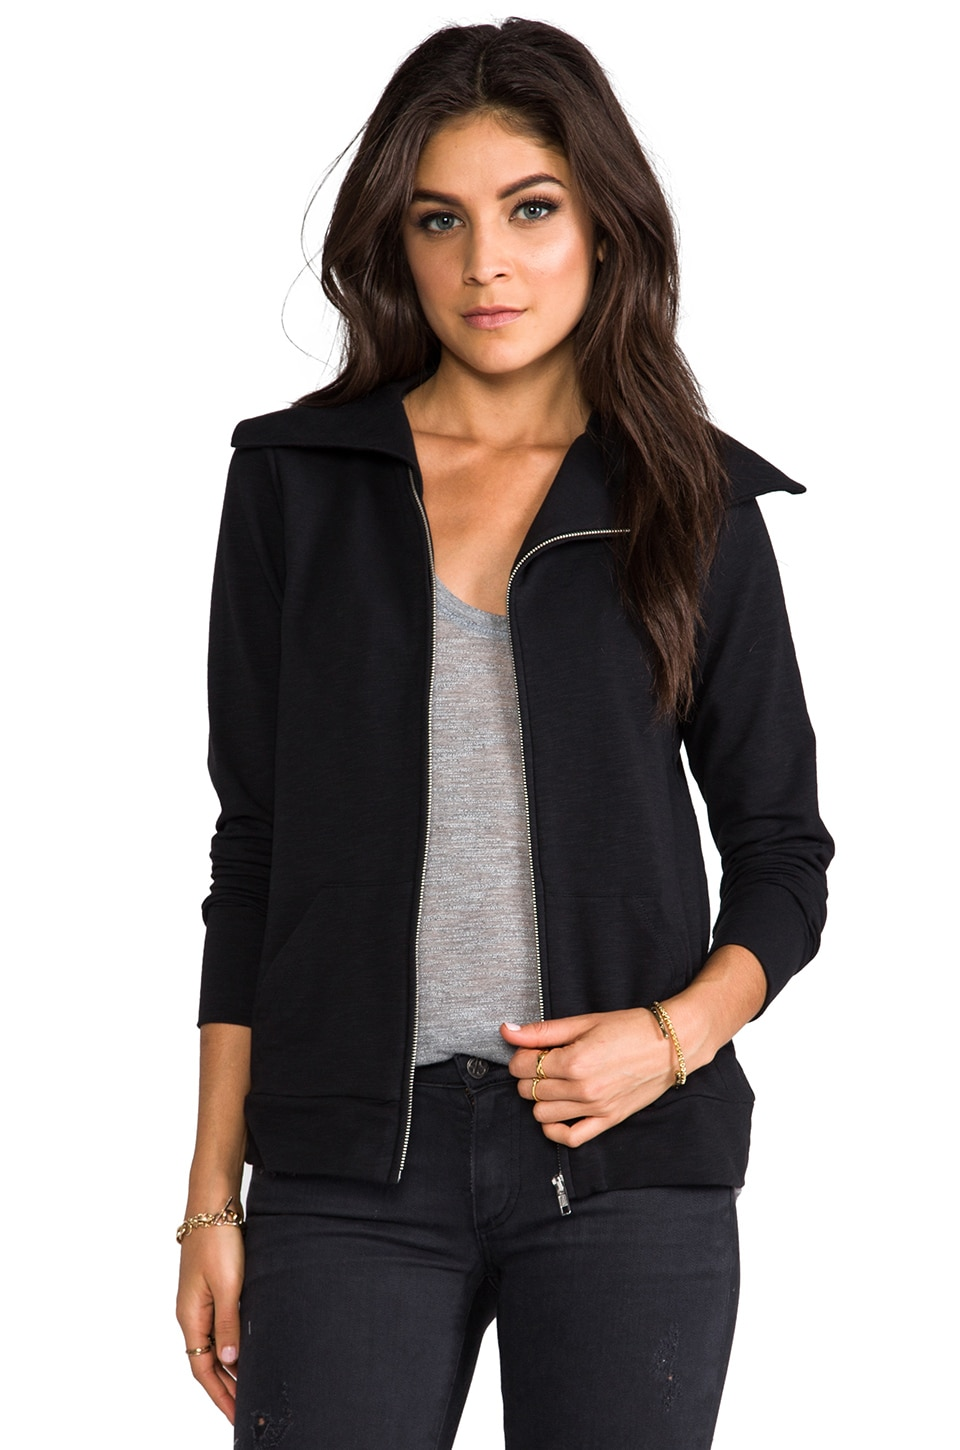 Soft Joie Dayva Jacket in Caviar